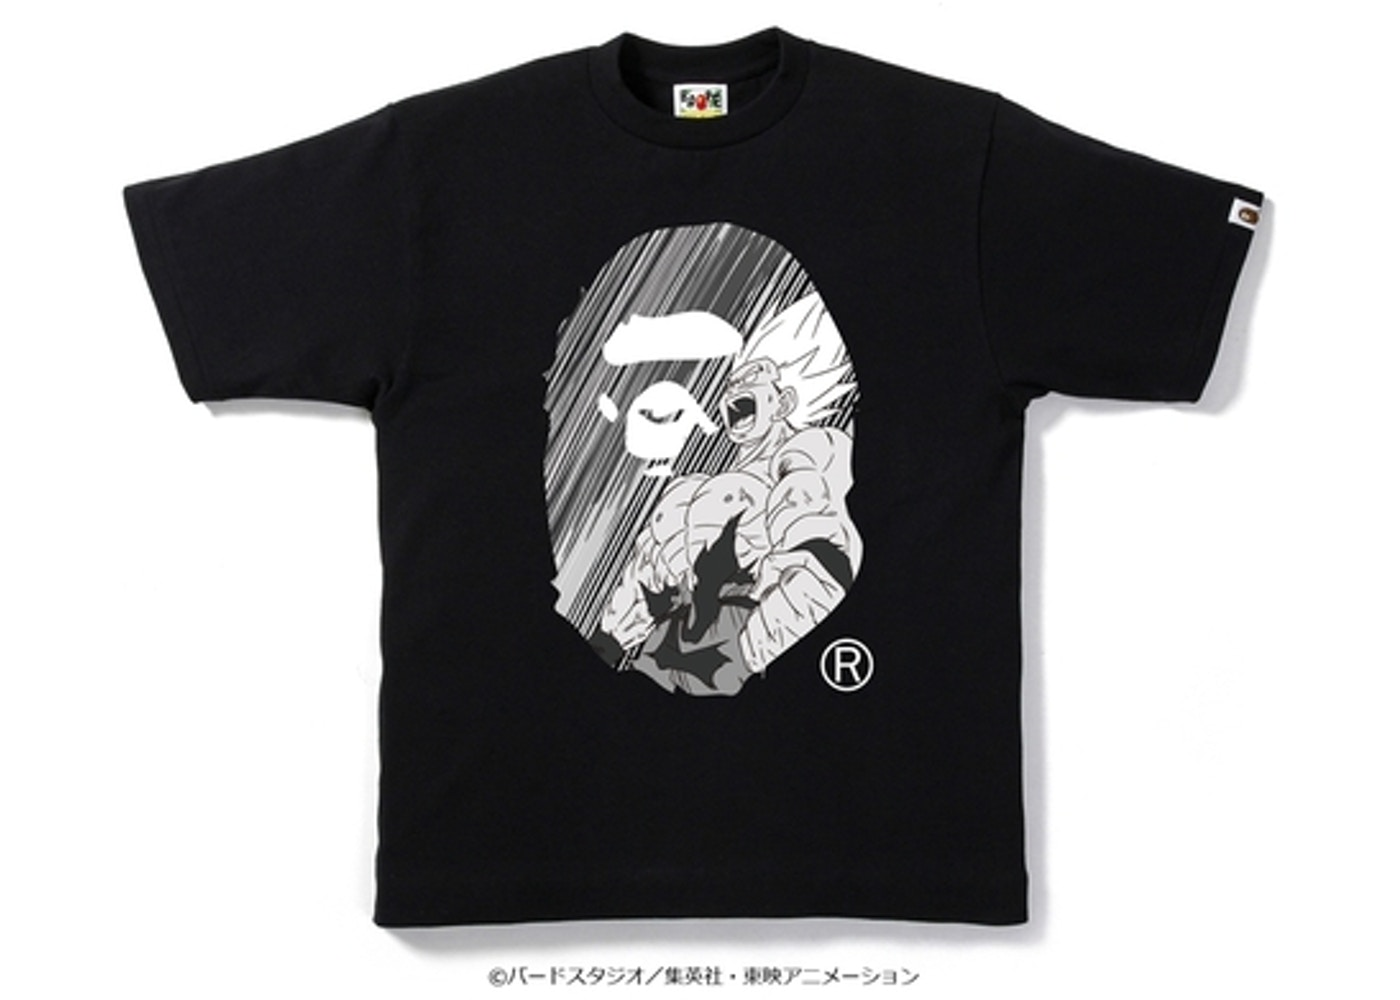 36460501 BAPE X Dragon Ball Z Tee 12 Black -